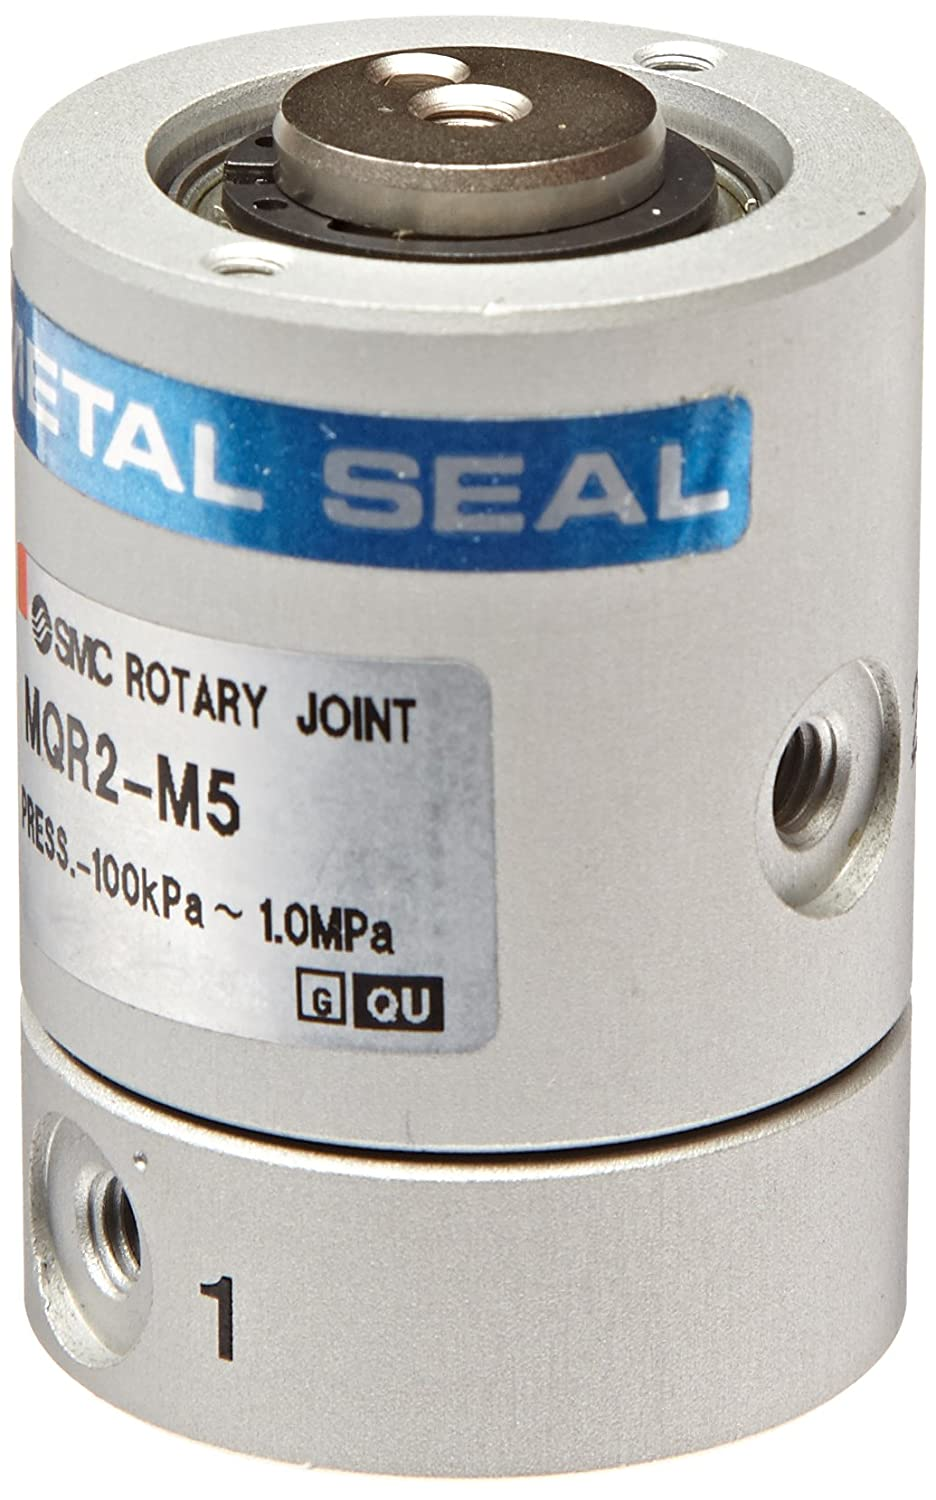 SMC MQR Series Low Torque Metal 2 Circuit Rotary Seal Max 60% OFF Joint M5 Limited time for free shipping